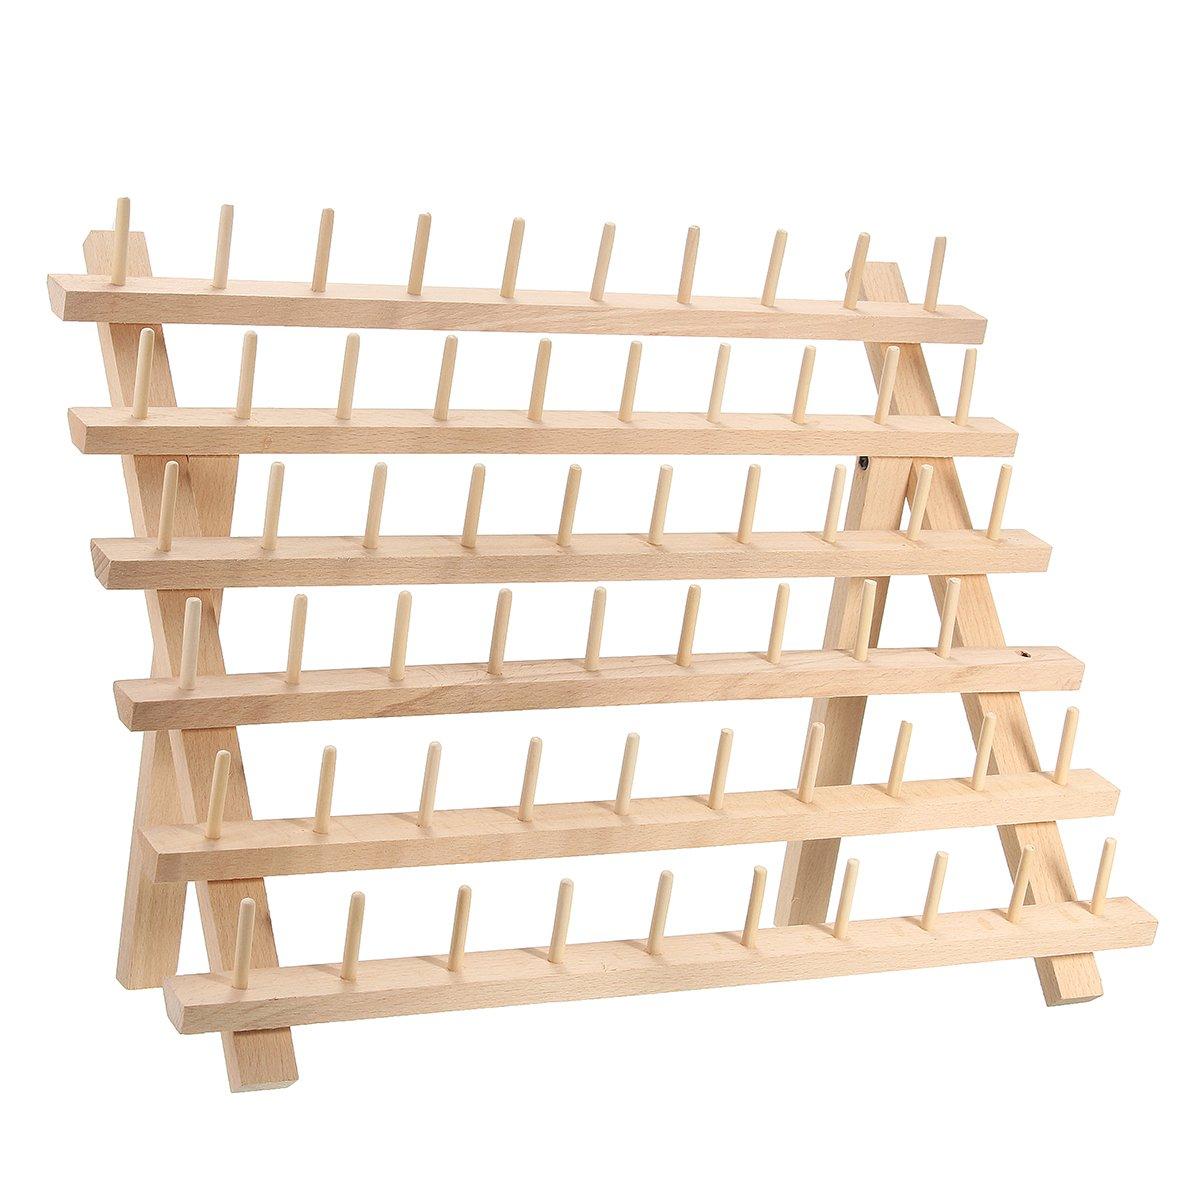 KINGSO 60 Spool Wooden Thread Rack and Organizer for Sewing Quilting Embroidery by KingSo